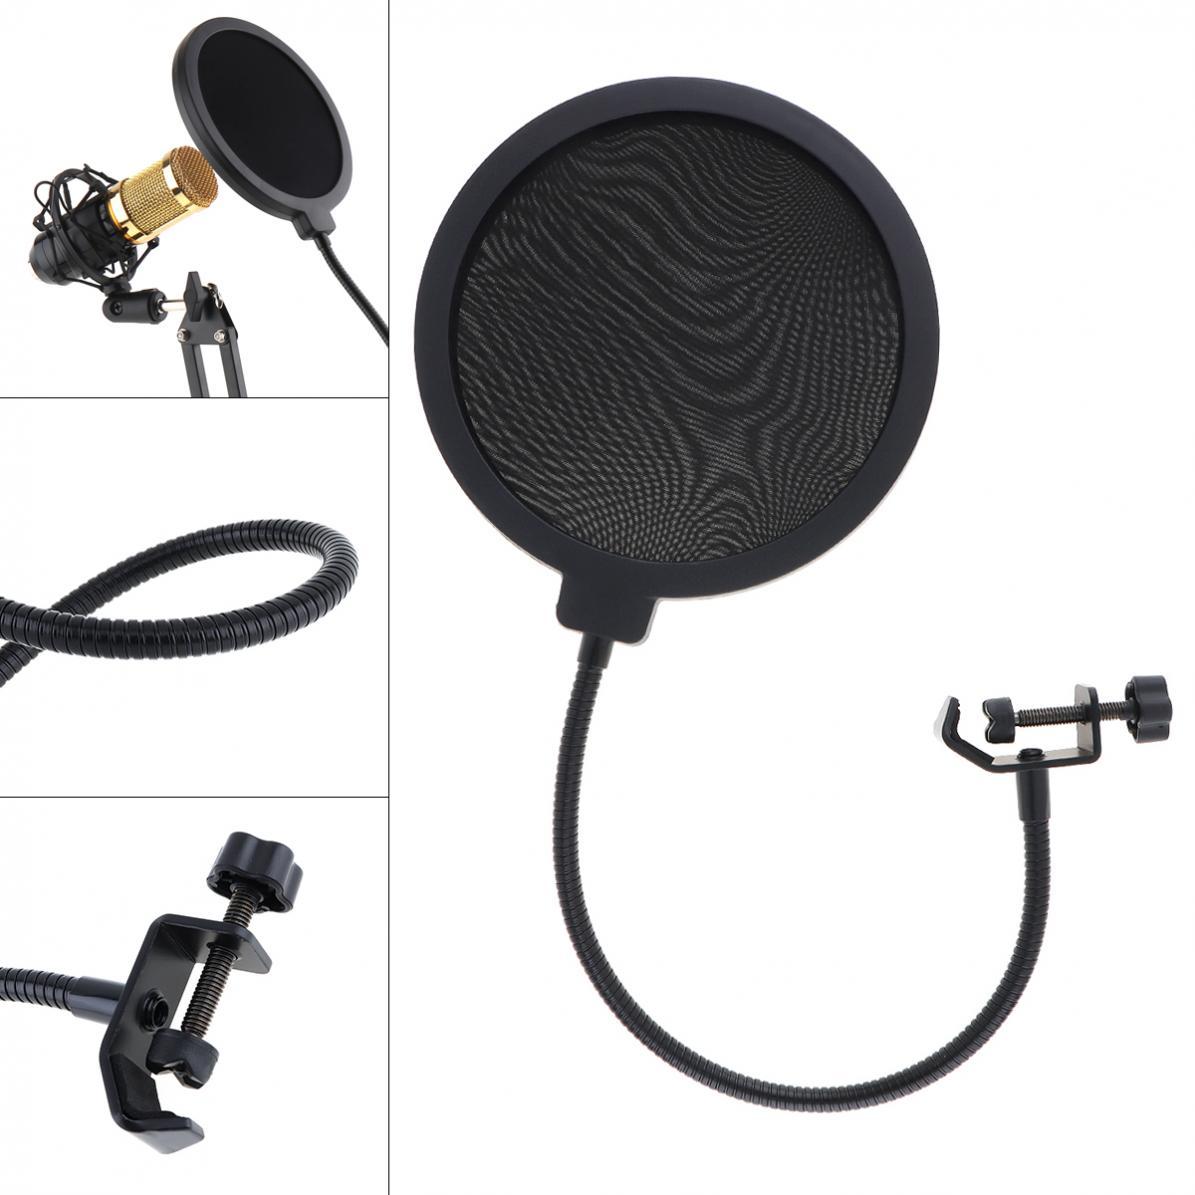 155mm Diameter Double Layer Studio Microphone Flexible Wind Screen Mask Mic Pop Filter Shield For Speaking Recording Accessories